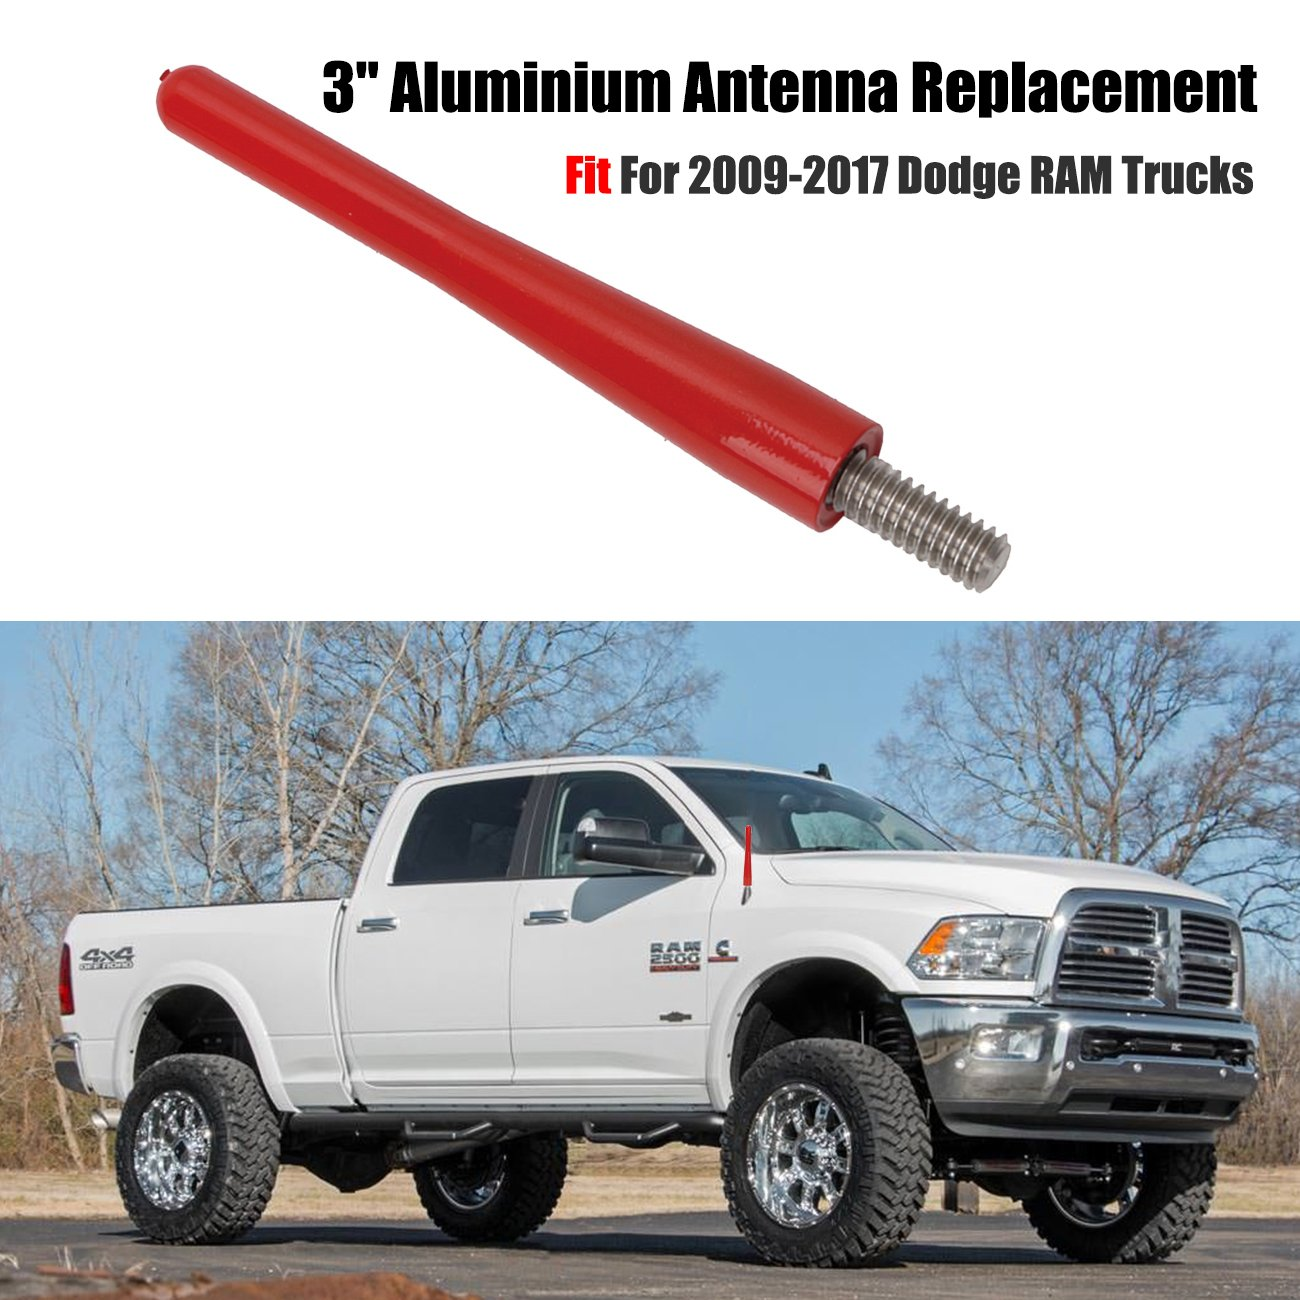 Boxatdoor 7,6 cm//8.1 cm 6 mm AM FM antenna antenna auto larghezza capotasto in metallo nero per RAM Trucks 2009-2017 Antenna auto per RAM Trucks